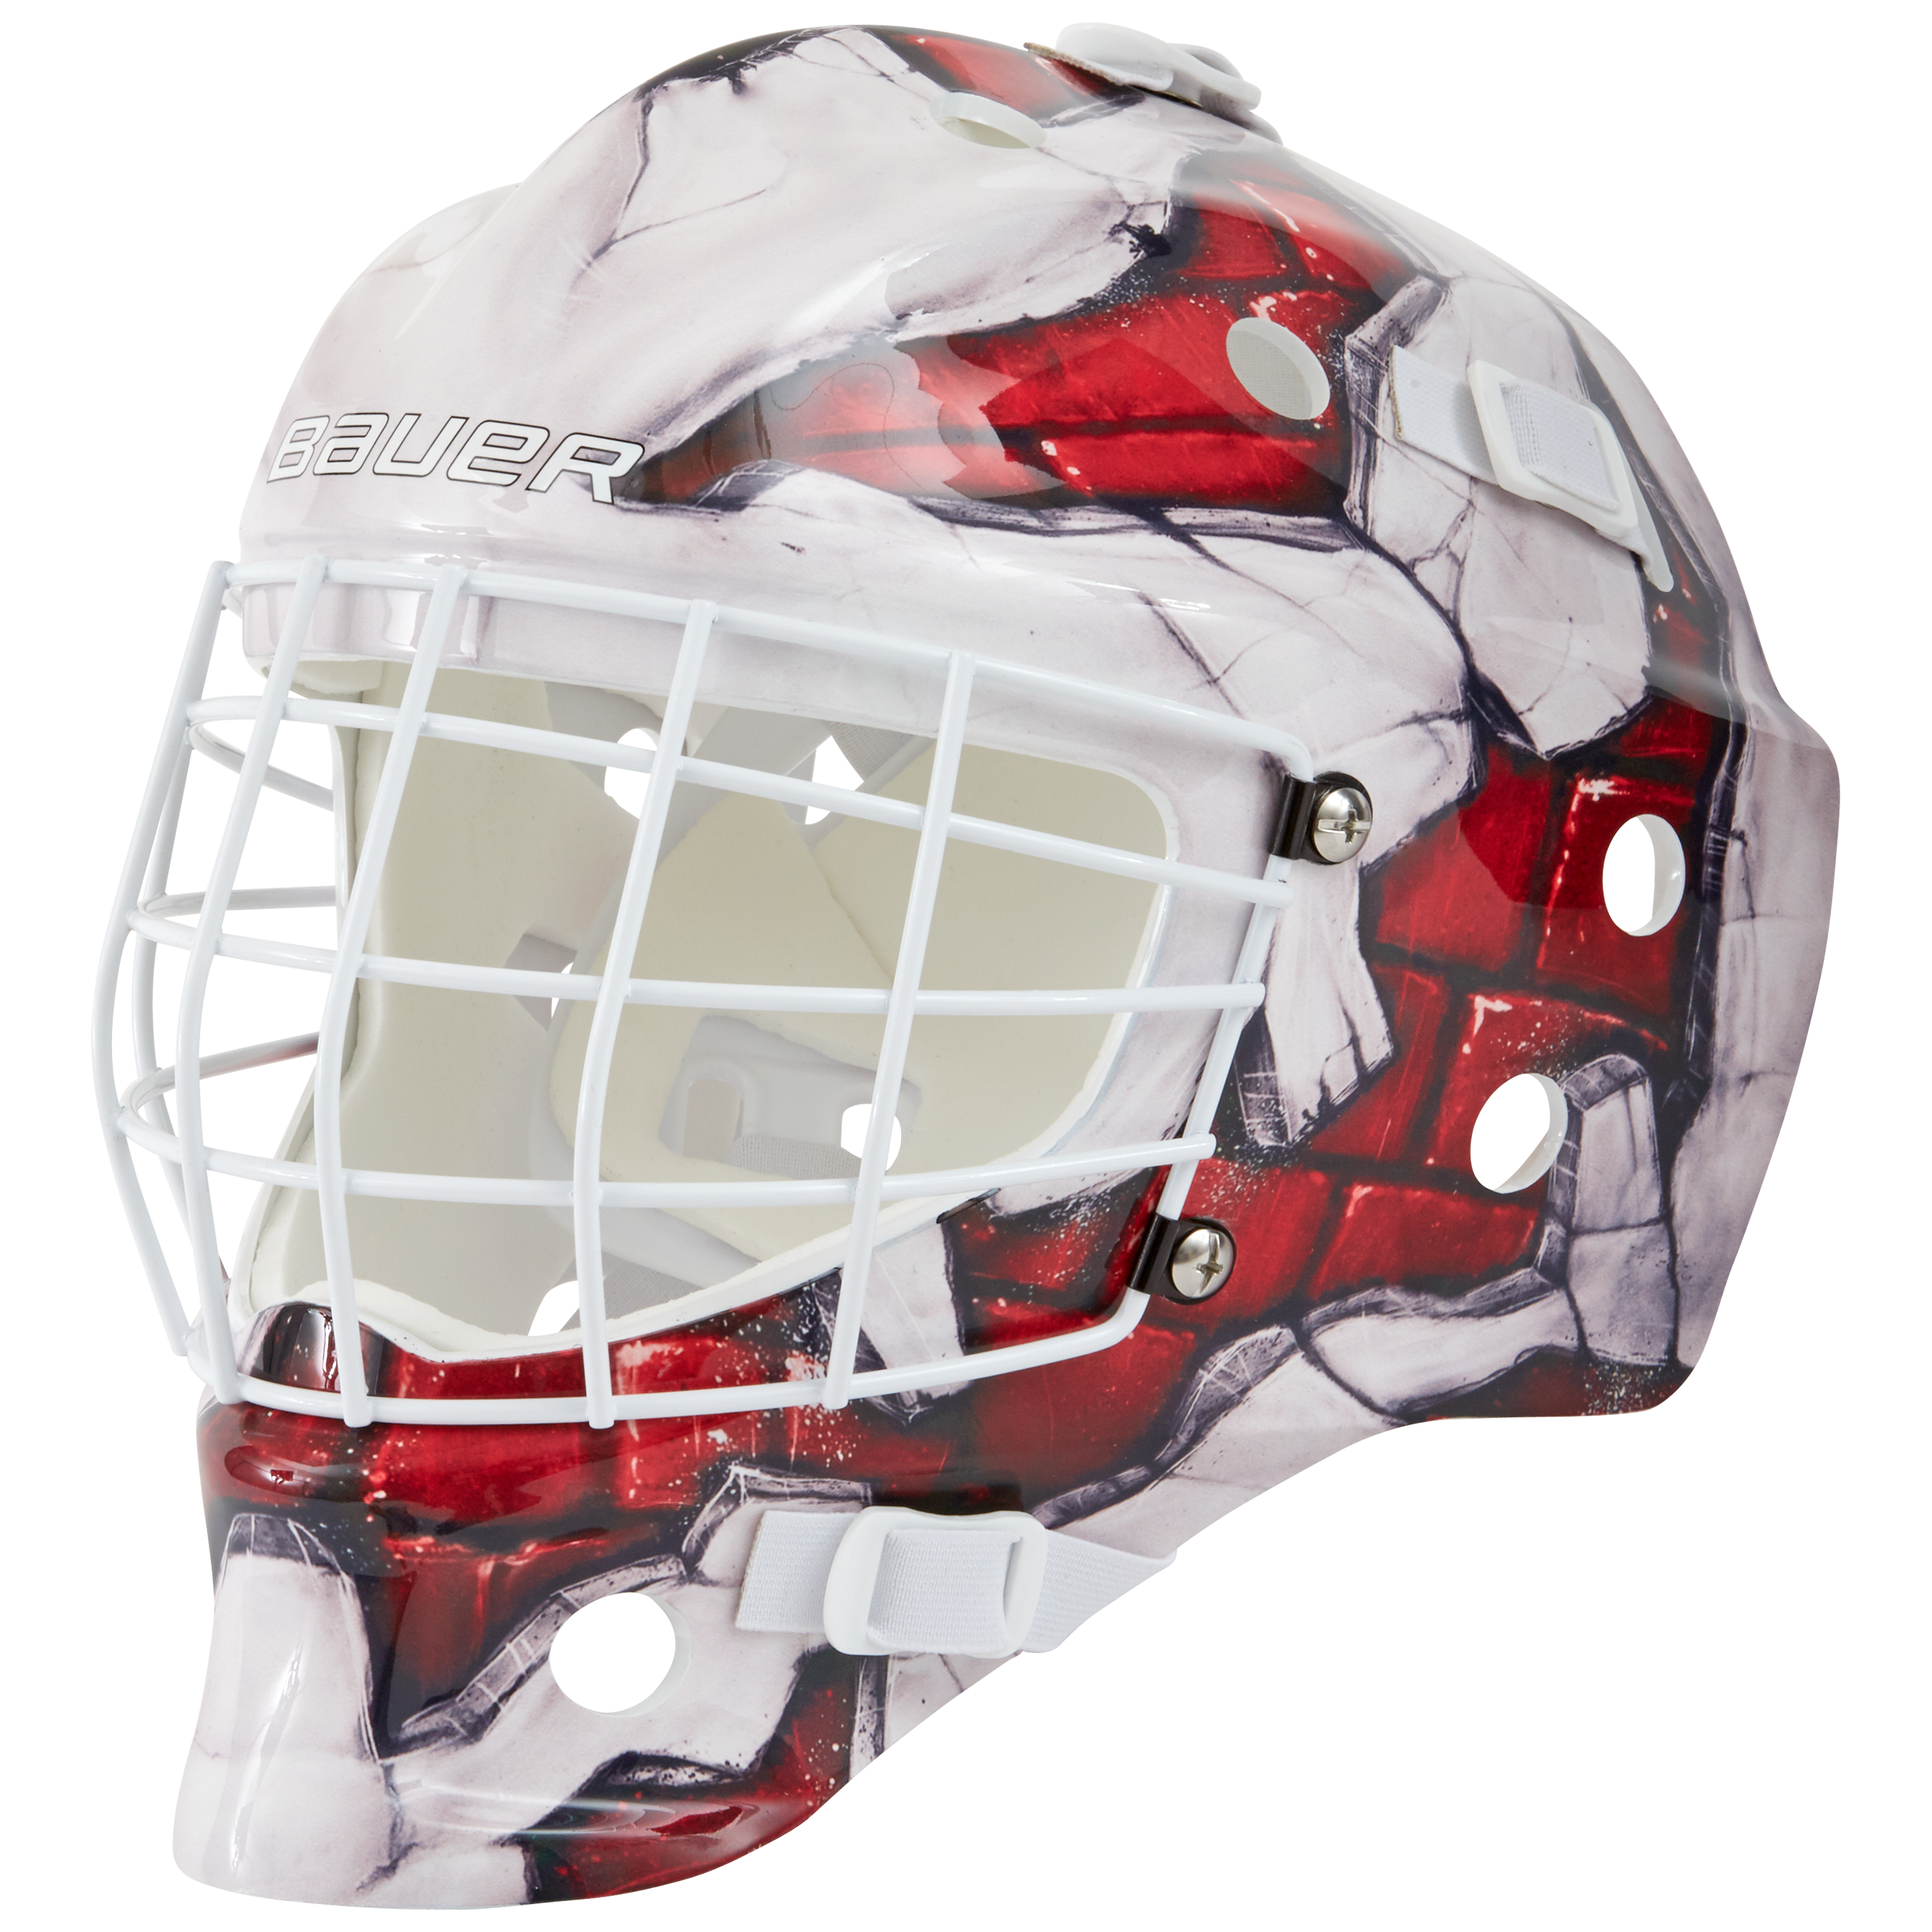 NME STREET GOAL MASK YOUTH S17,BRICK,moyen